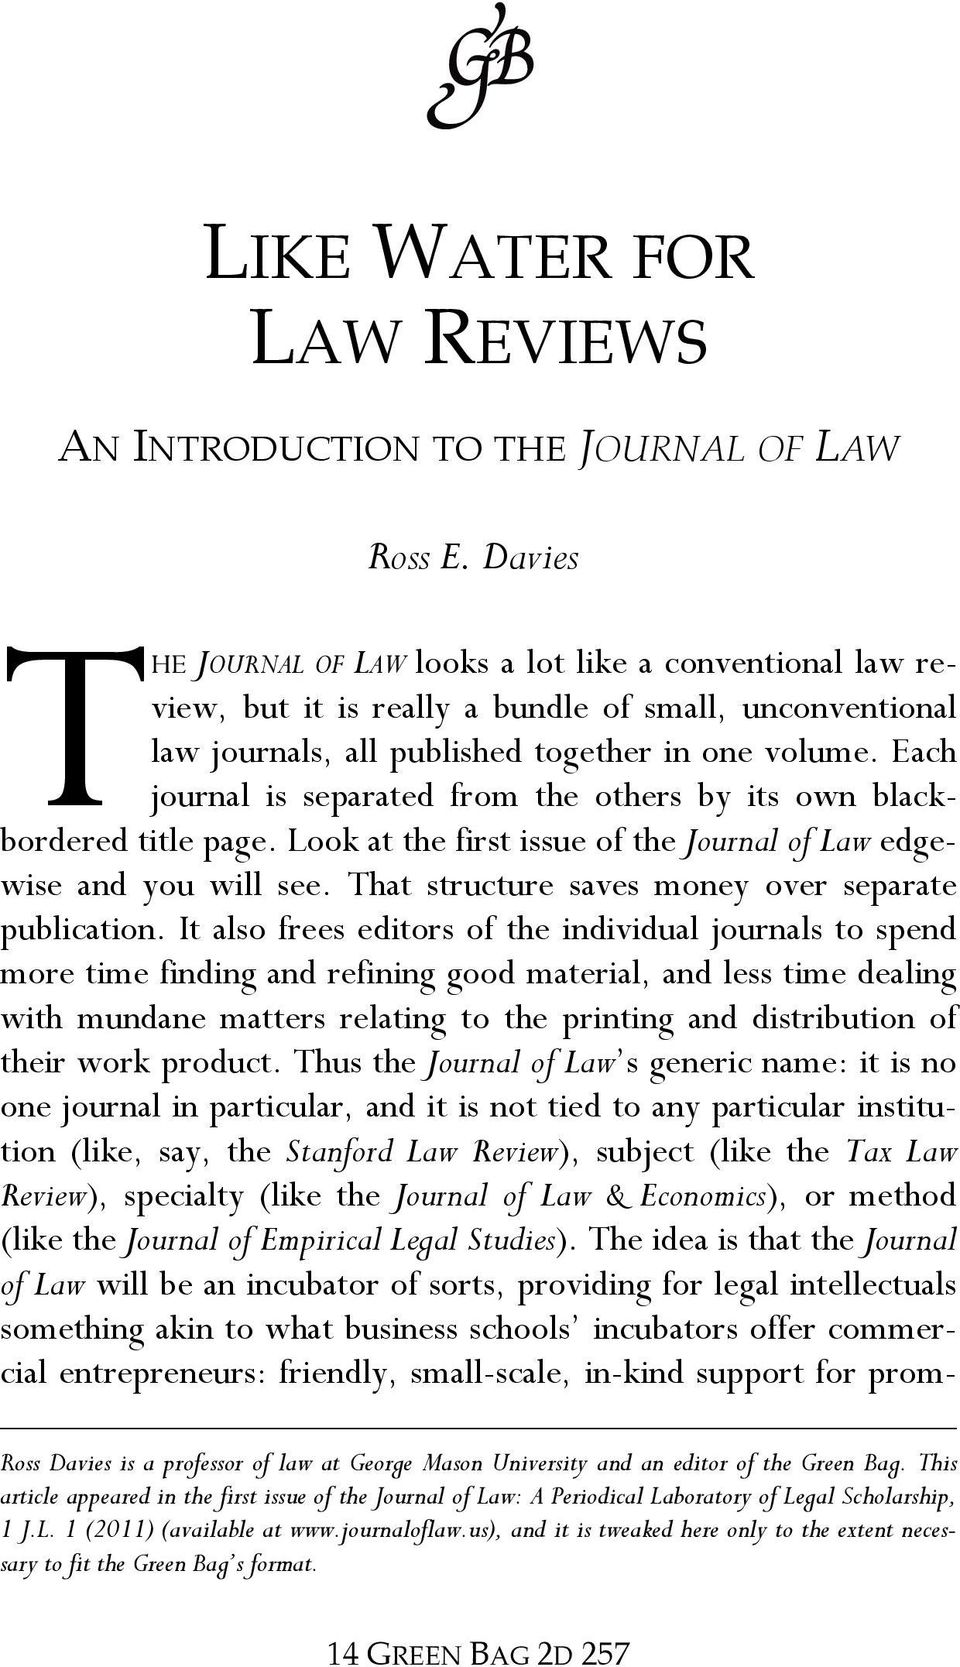 Each journal is separated from the others by its own blackbordered title page. Look at the first issue of the Journal of Law edgewise and you will see.